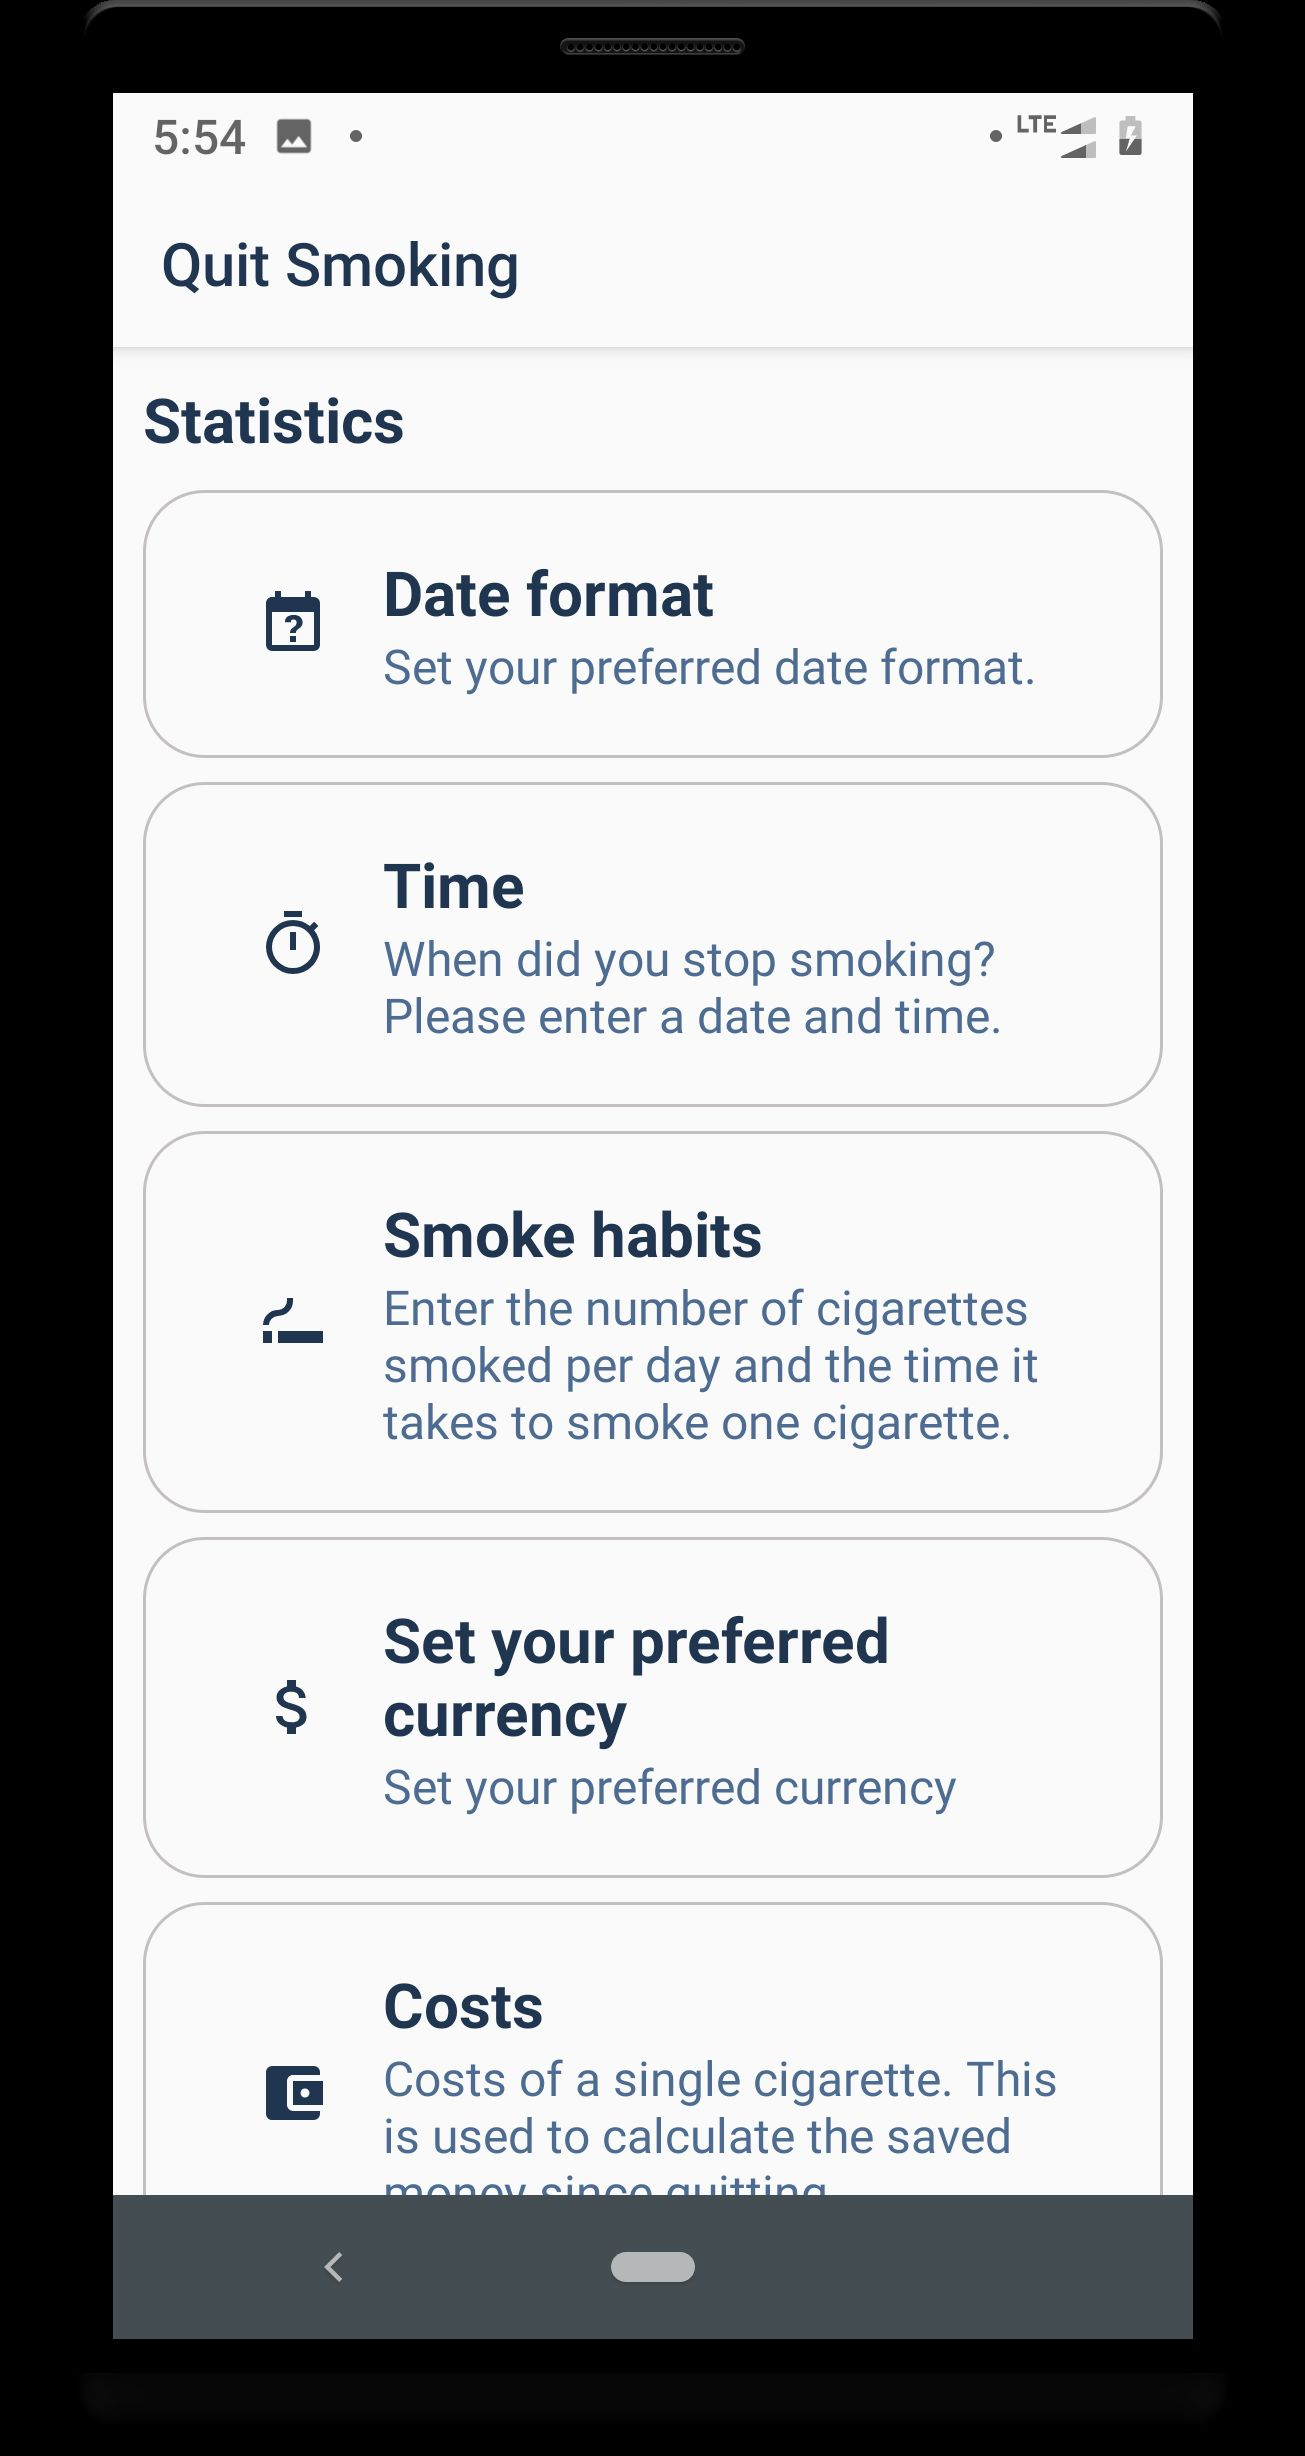 Quit smoking - Android Source code Screenshot 2